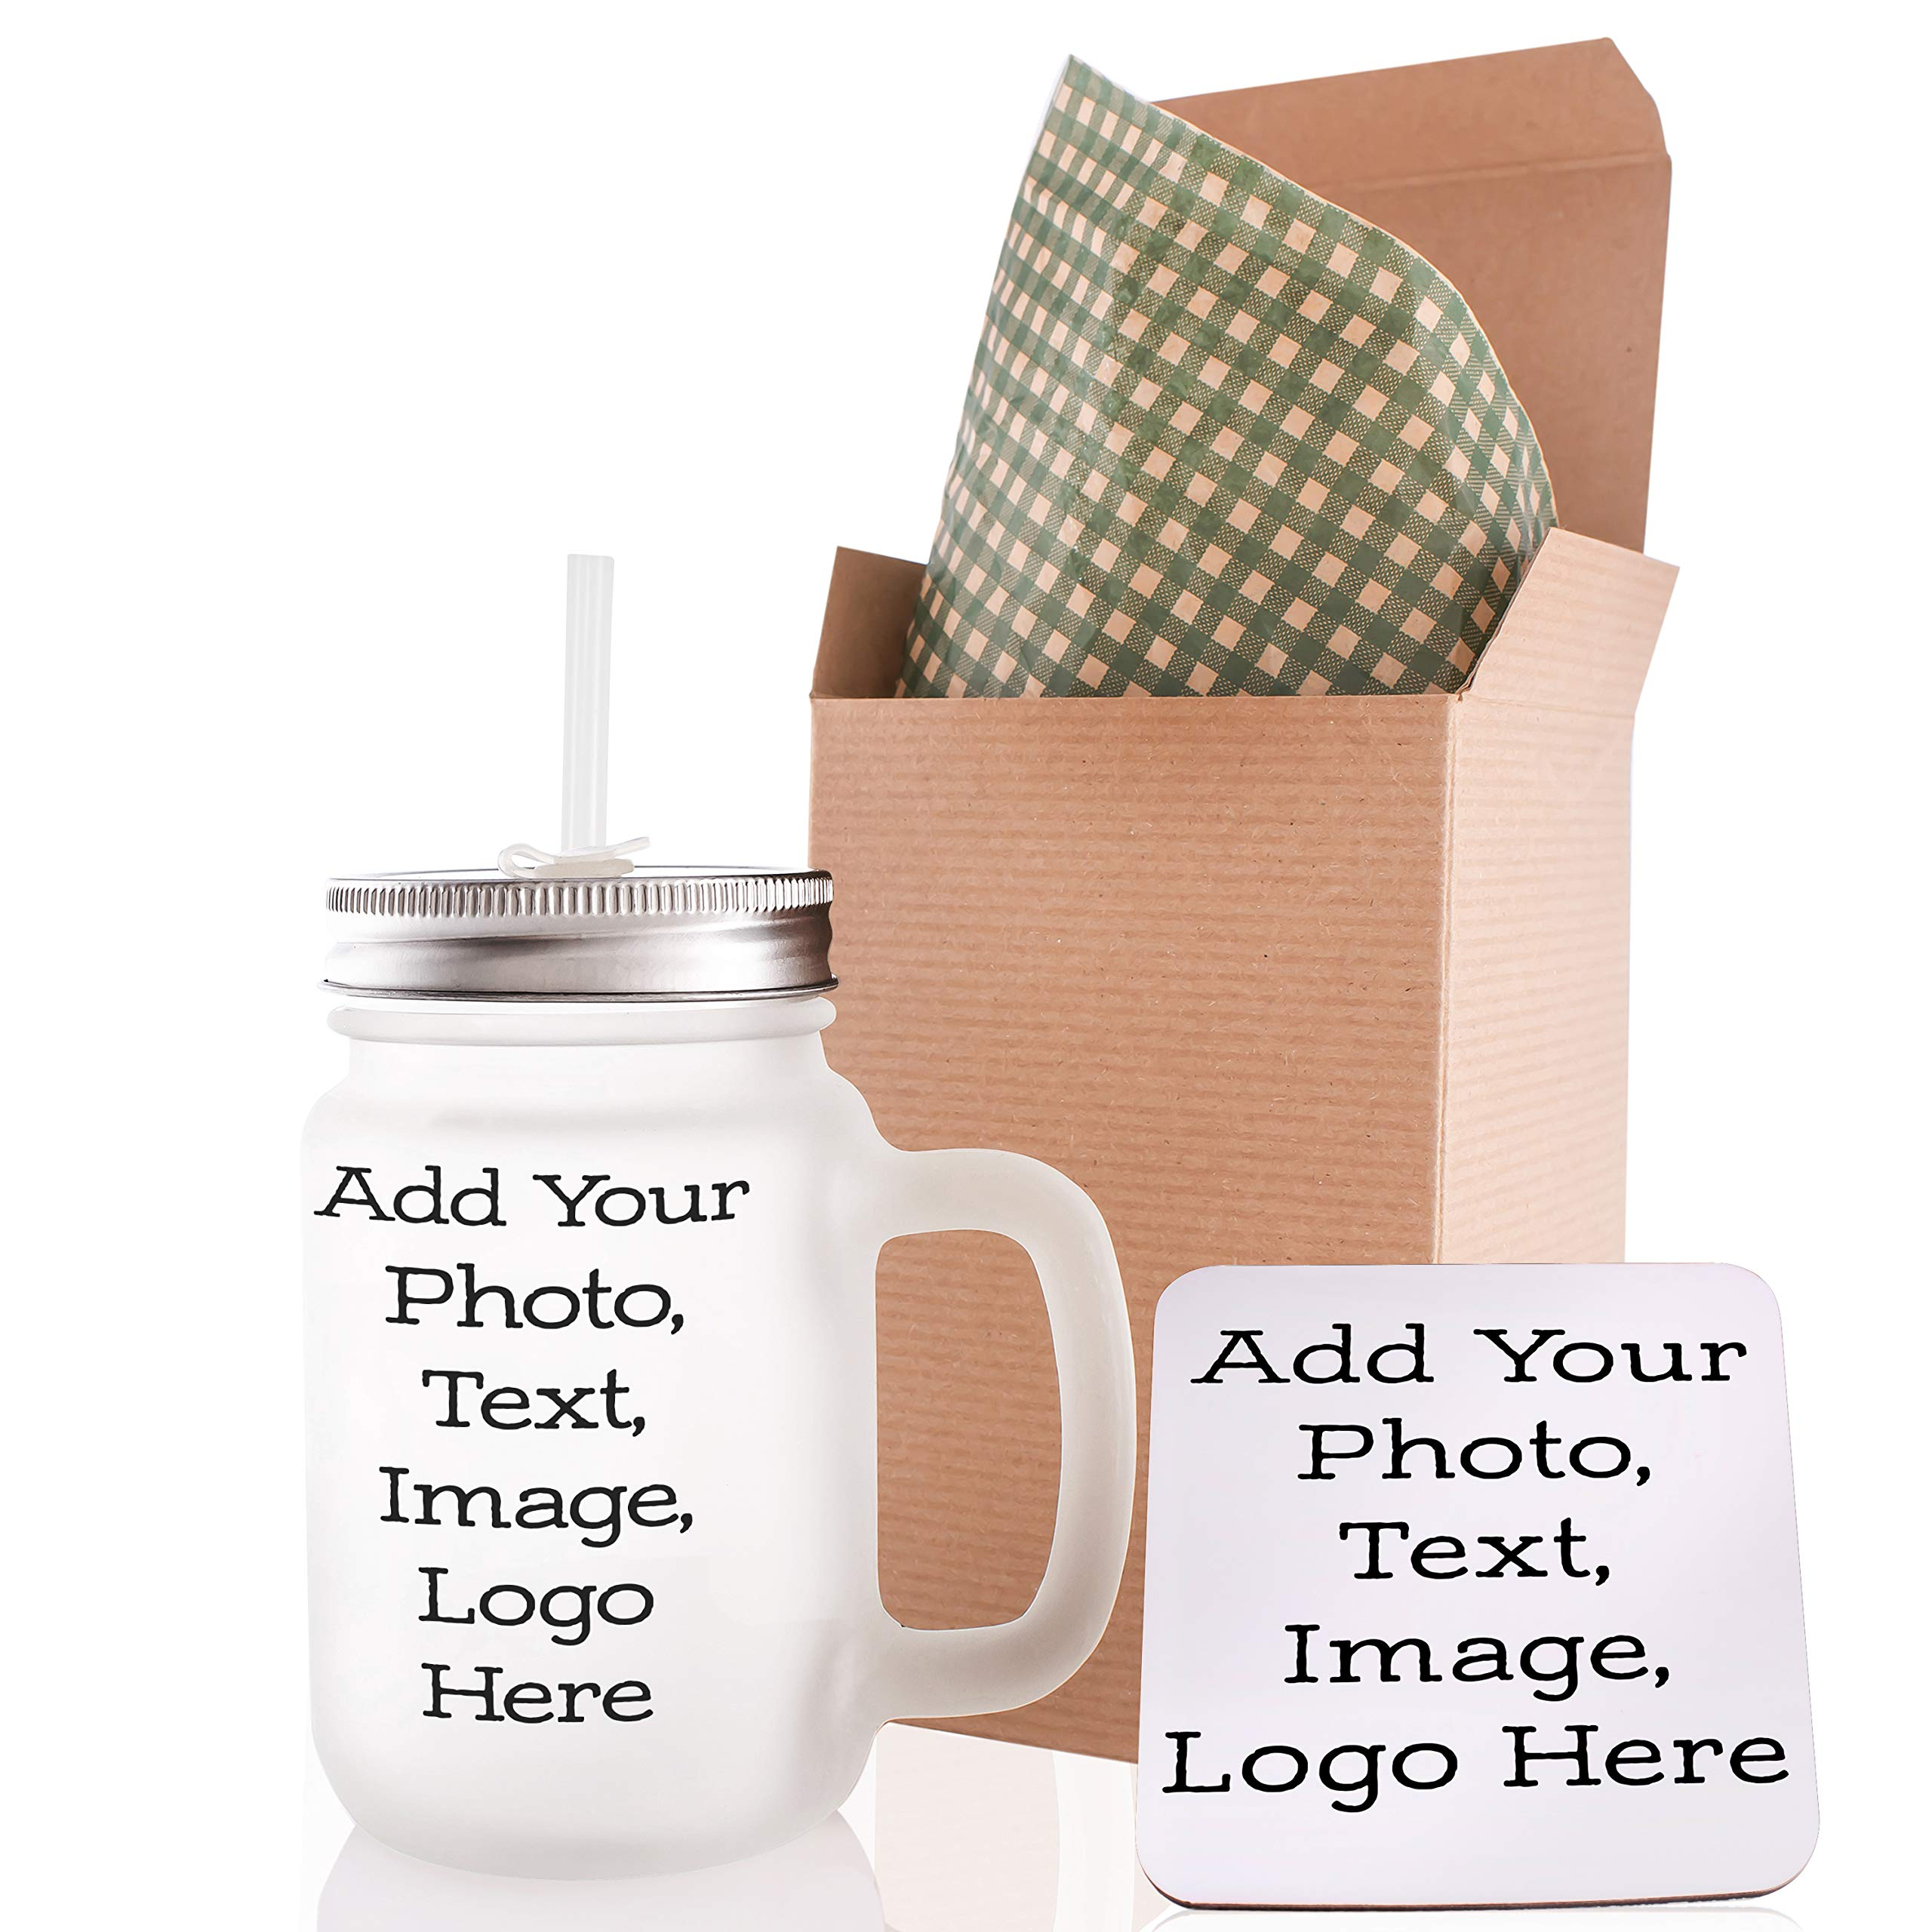 Customizable Mason Jar with Your Custom Picture, Photo and Text - Personalized 12oz Mason Jar with Lid and Straw - Create Your Own Design